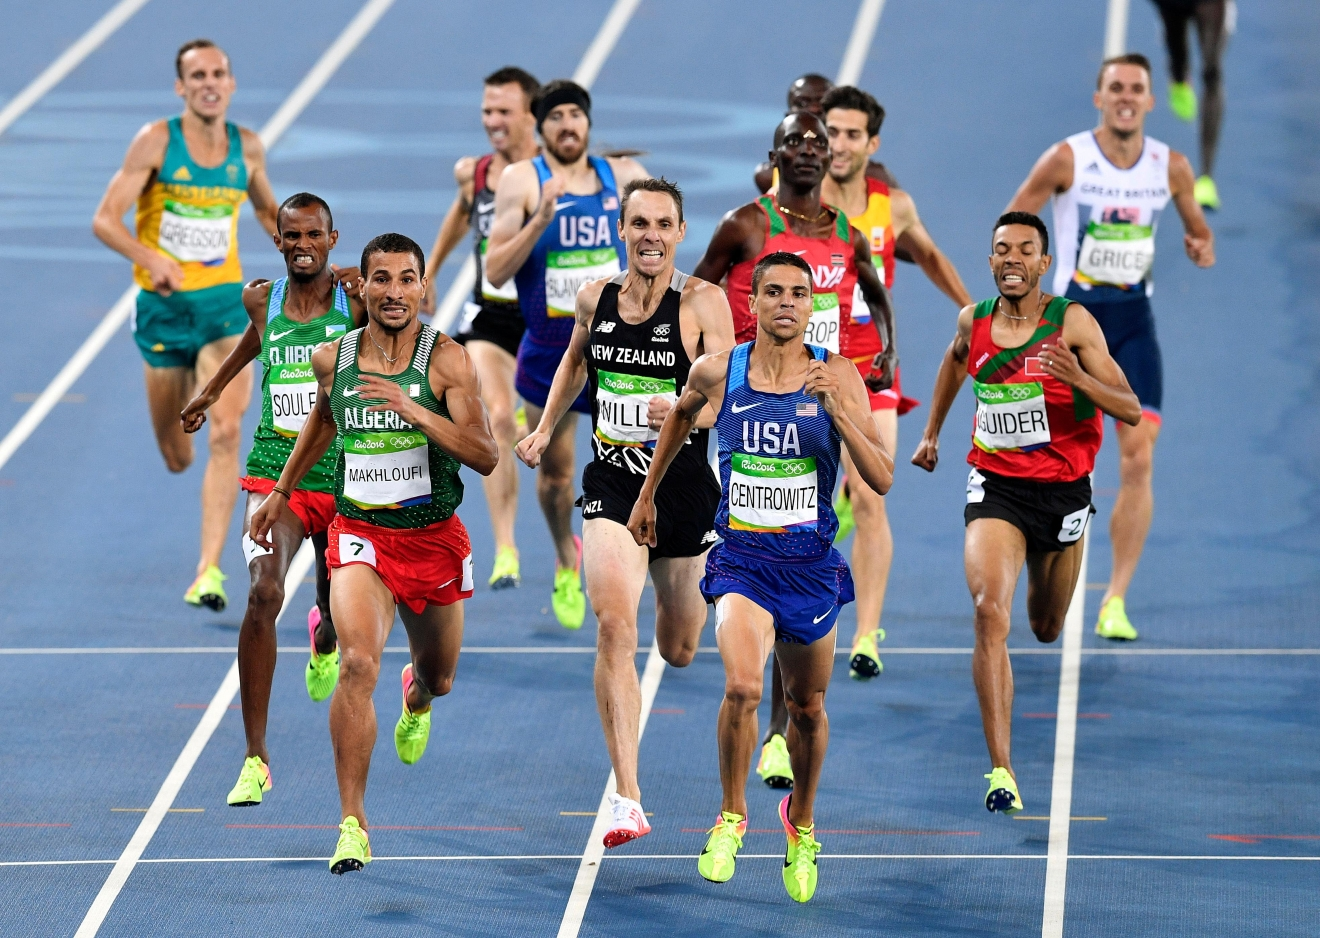 United States' Matthew Centrowitz, center right, Algeria's Taoufik Makhloufi, third left, and New Zealand's Nicholas Willis, center, compete in the men's 1500-meter final during the athletics competitions of the 2016 Summer Olympics at the Olympic stadium in Rio de Janeiro, Brazil, Saturday, Aug. 20, 2016. (AP Photo/Martin Meissner)